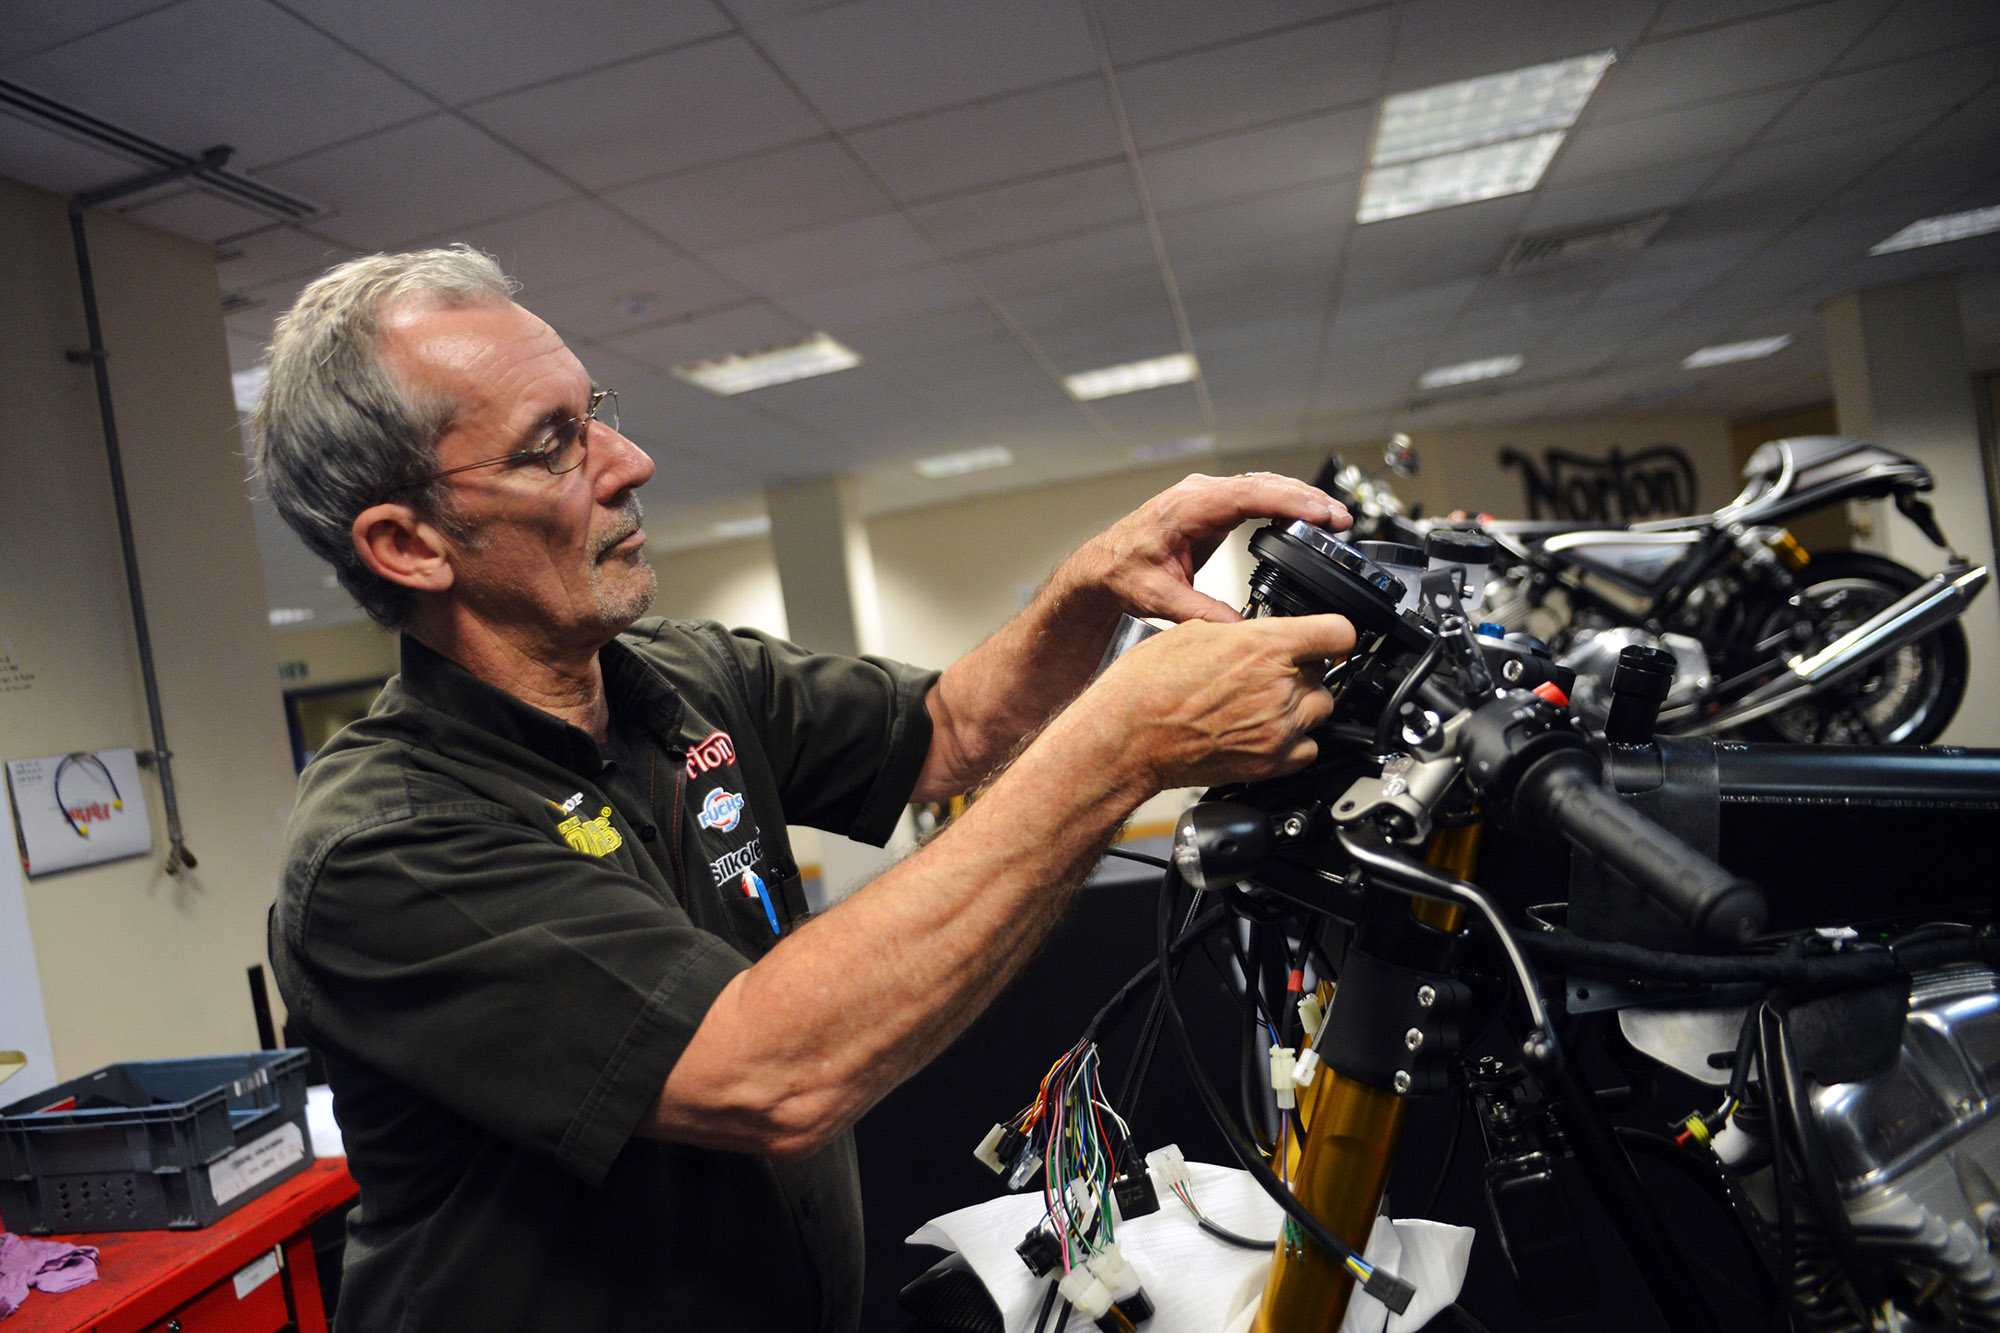 Mick Colley works on a new bike